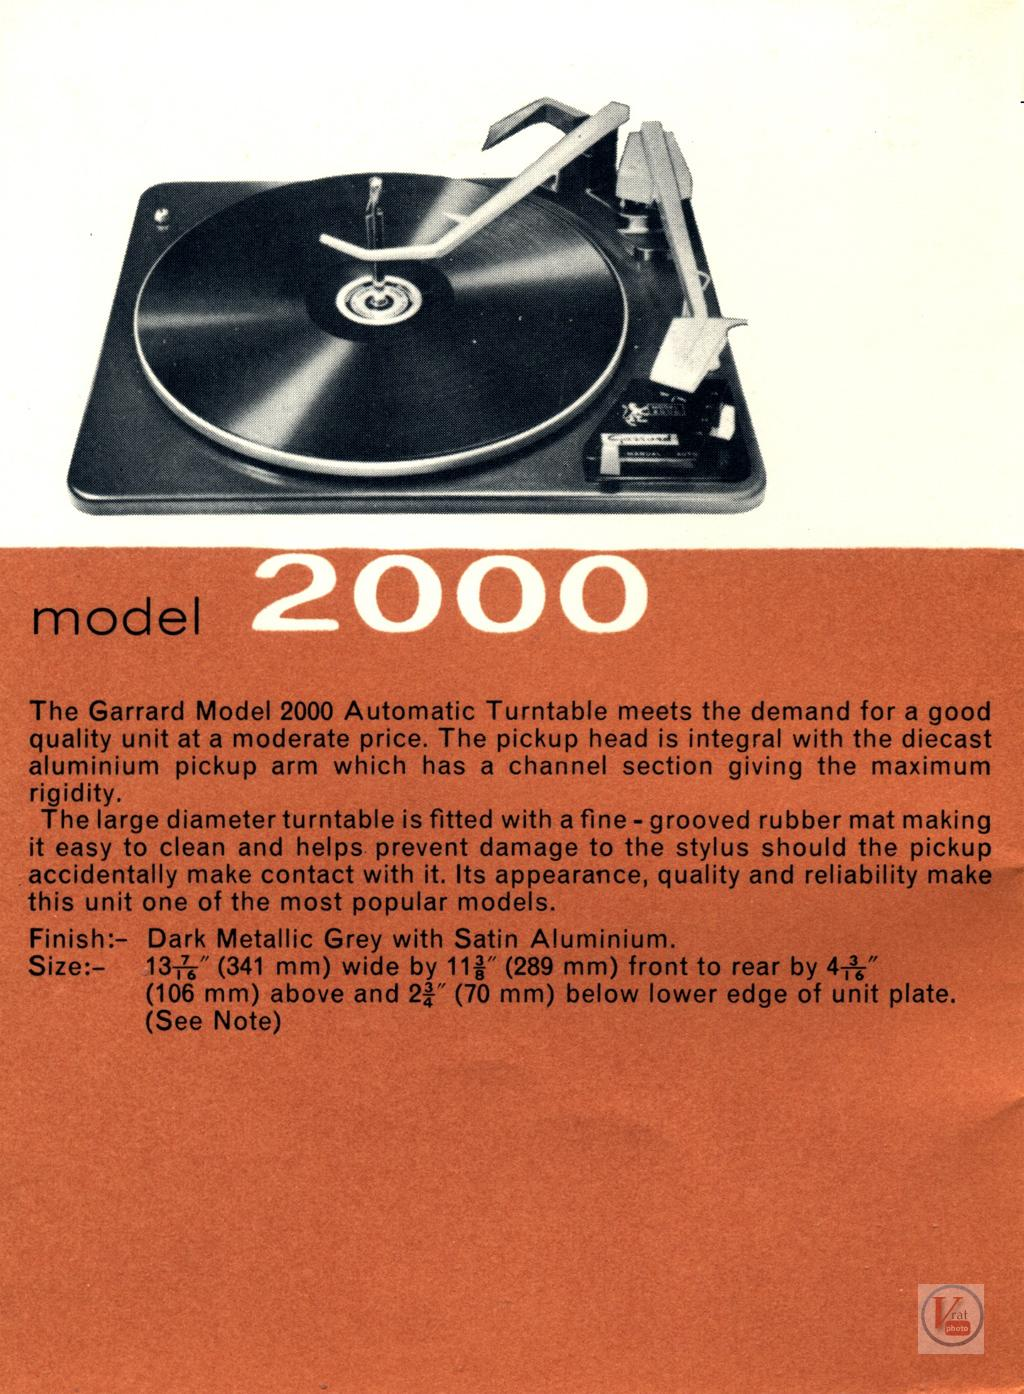 Garrard-401 Turntable 58